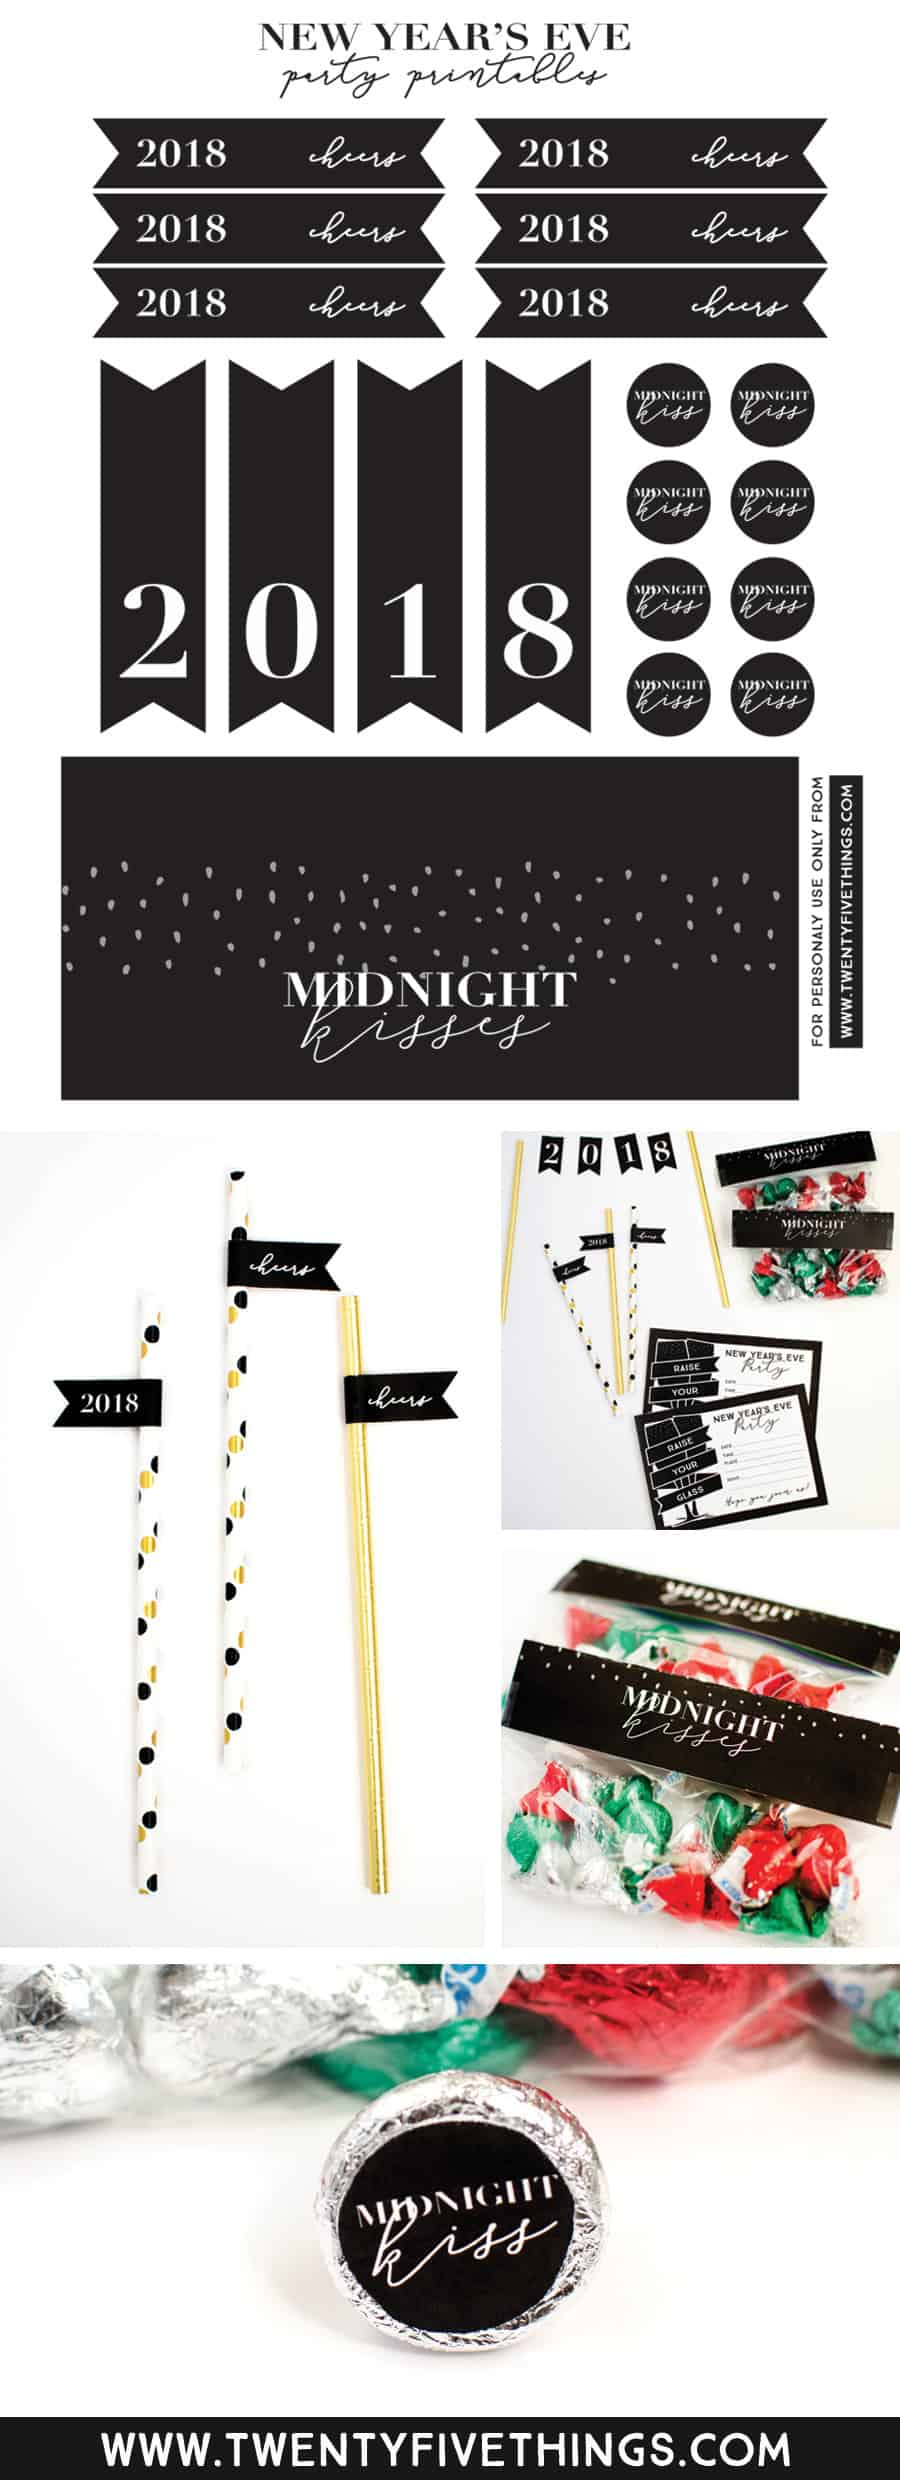 Free download New Year's Eve Party printables. You can download and print your own New Year's Eve party invitations and Midnight Kisses party favors. The site also has some free printable New Year's Decor to check out. #NewYearsEveParty #NewYear2018 #FreePrintables #NewYearsPartyFavors